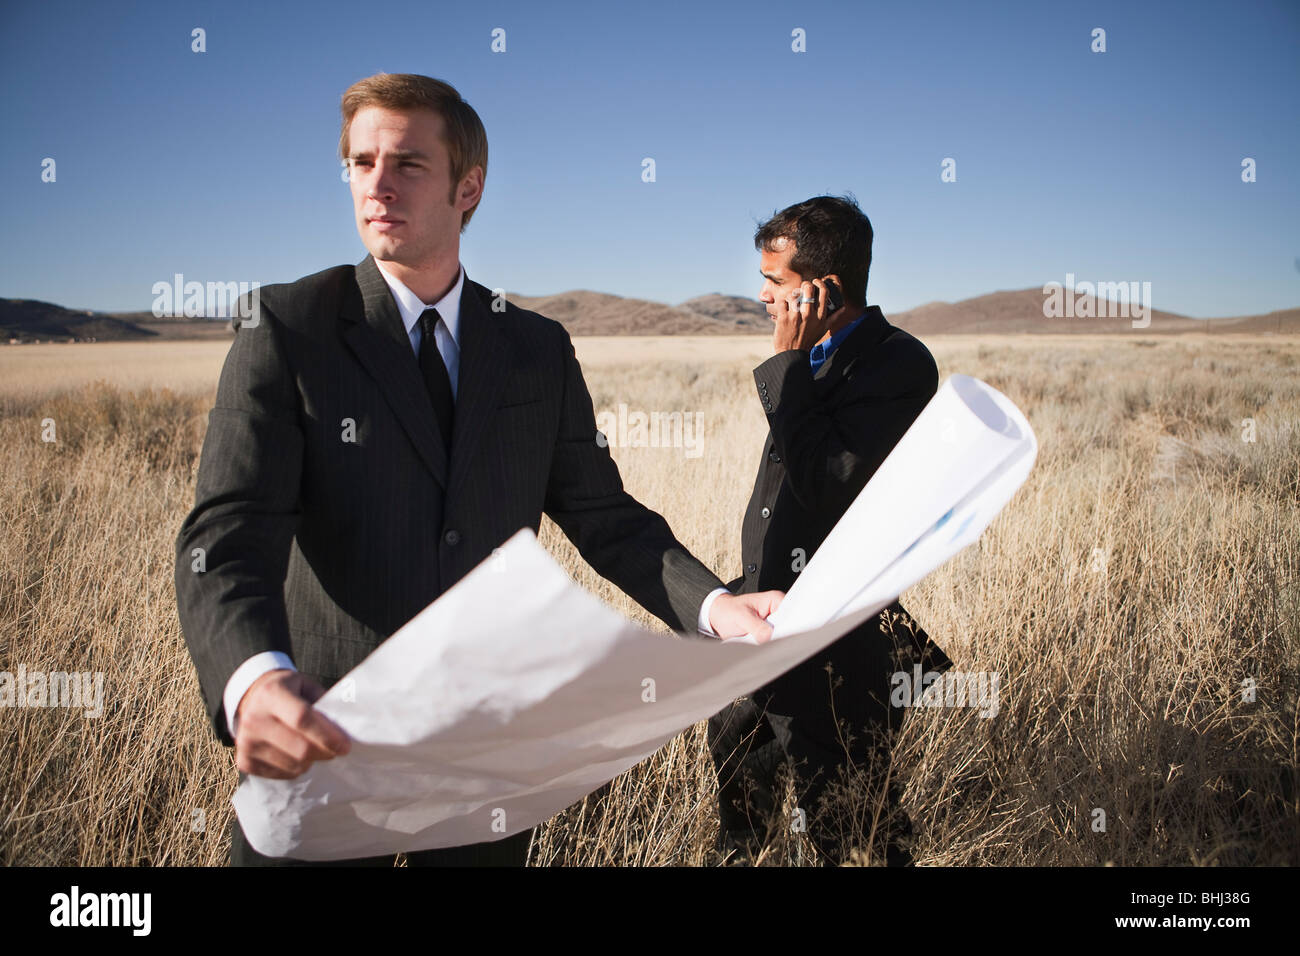 2 men with plans in field, one on phone - Stock Image